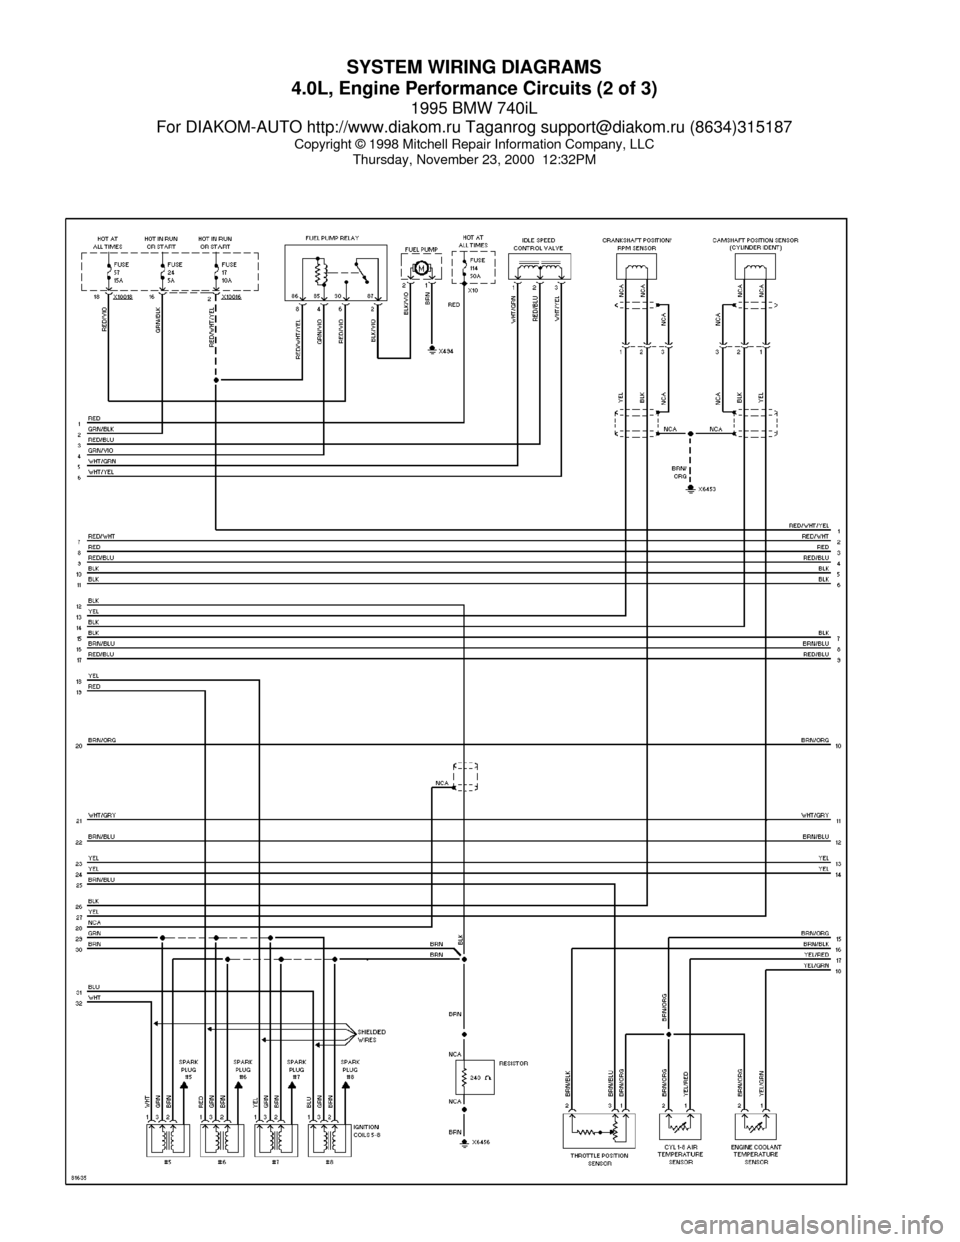 2006 bmw wiring diagram bmw 740il 1995 e38 system wiring diagrams bmw wiring diagram spaghetti